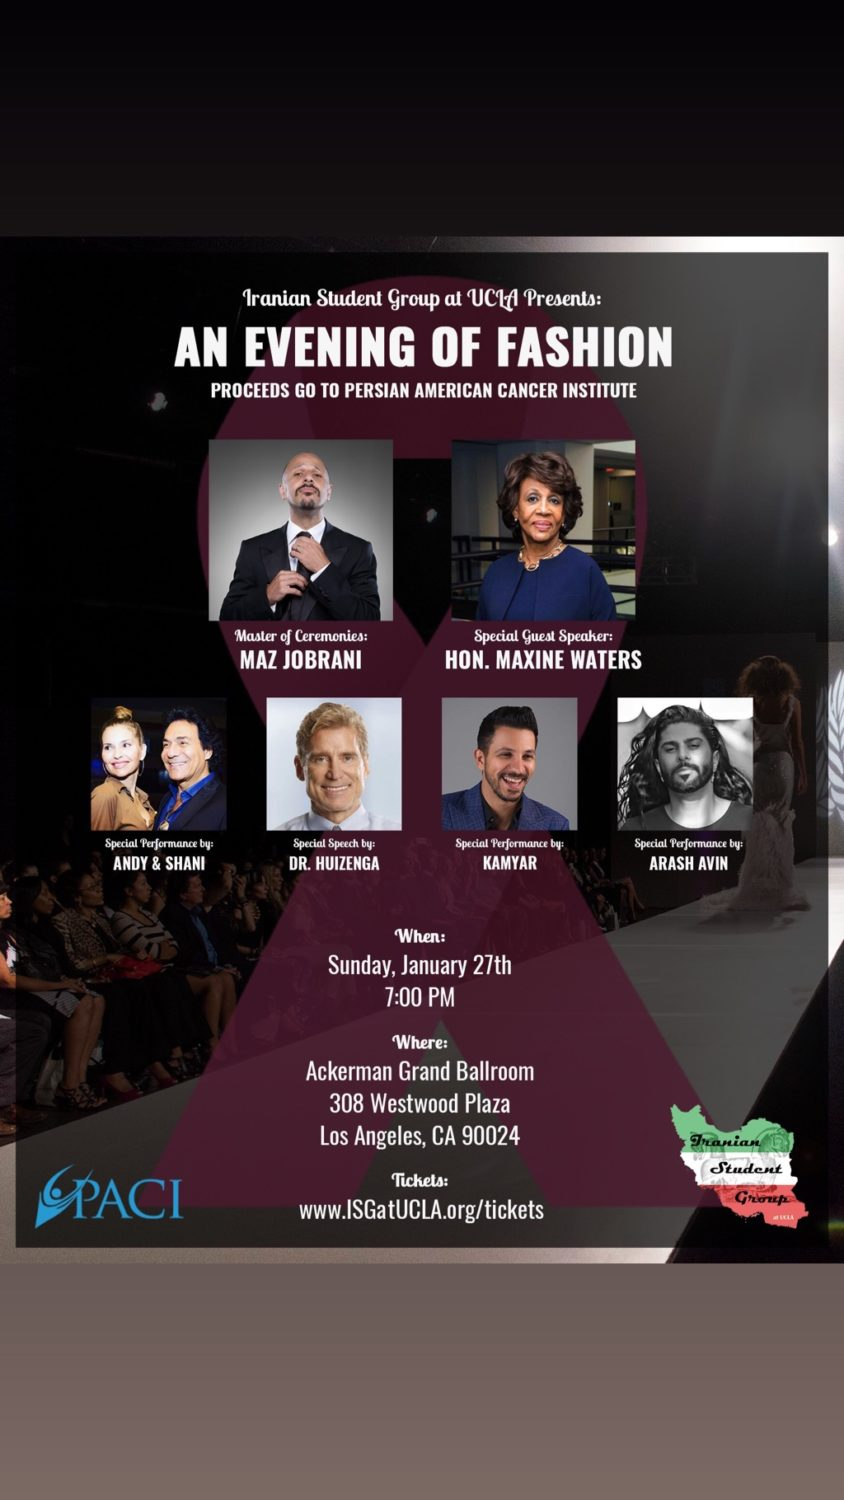 An Evening of Fashion